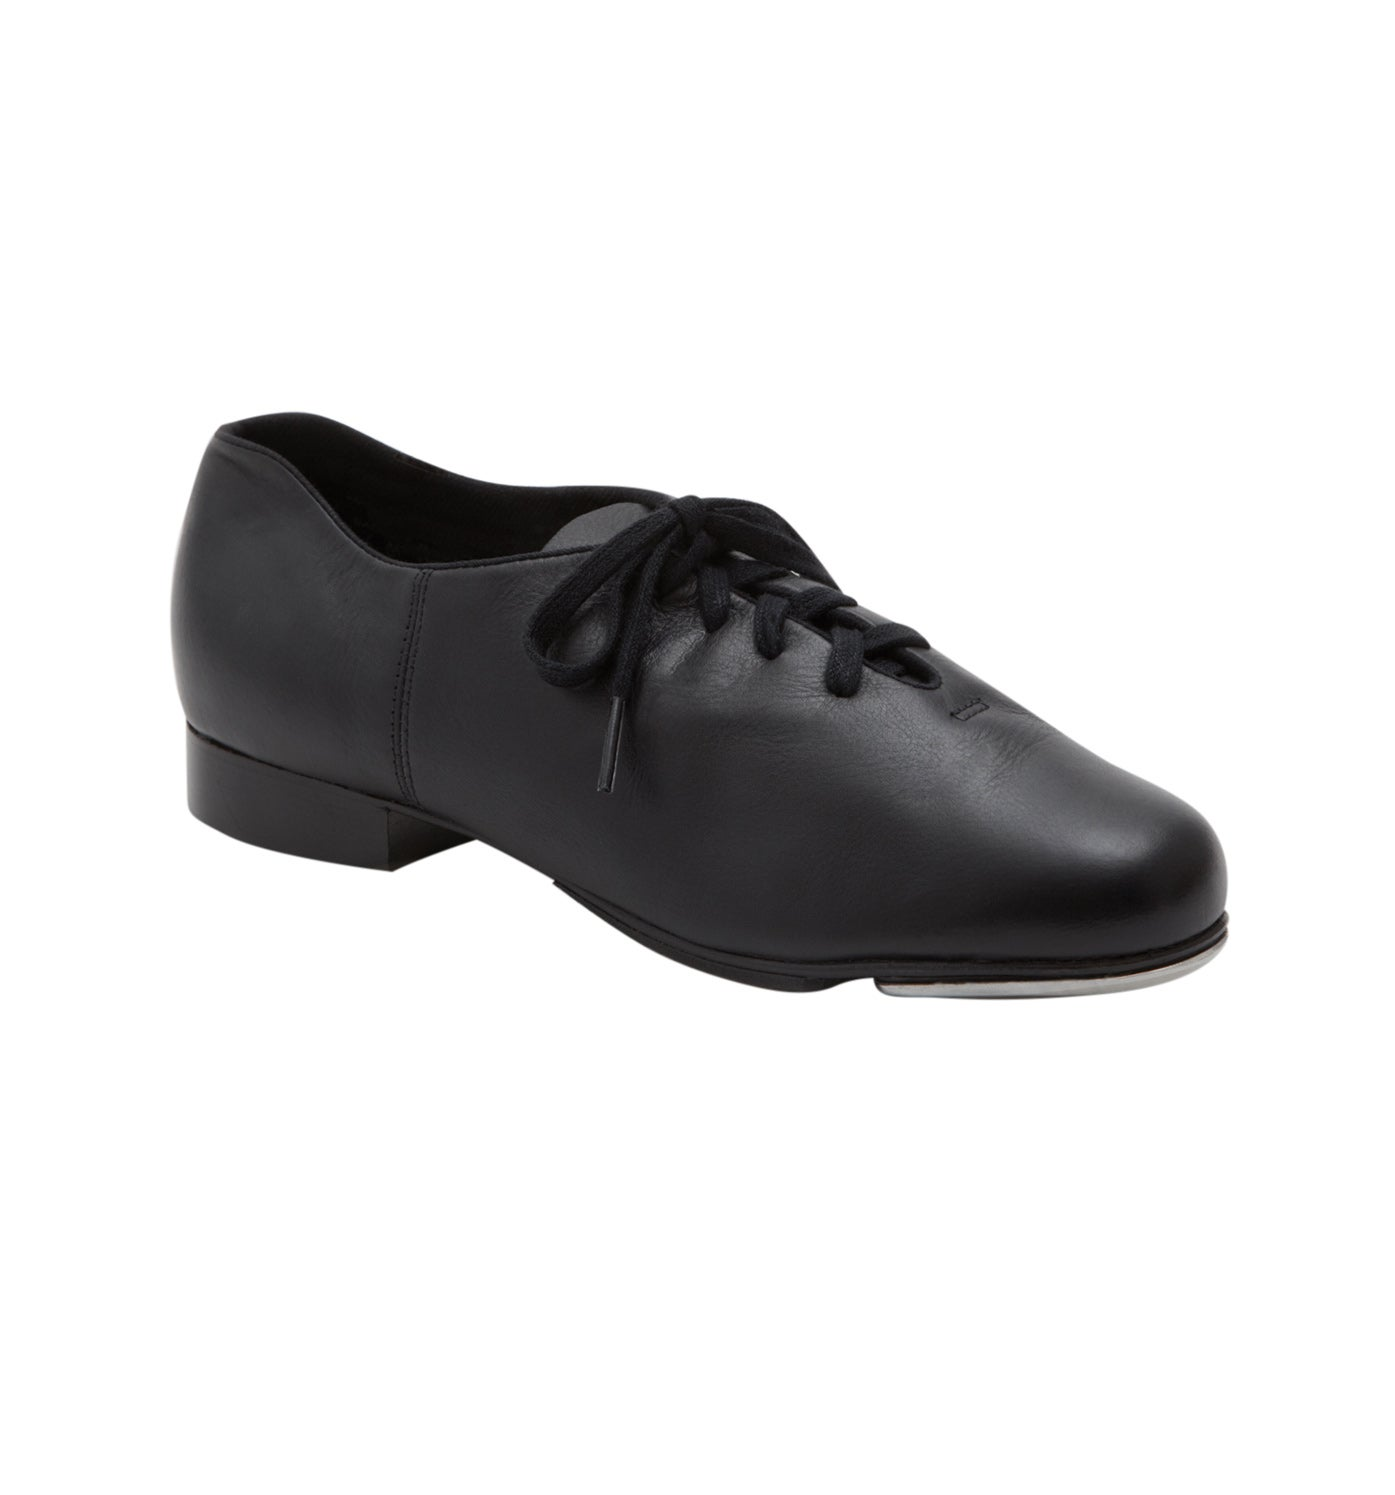 Image of Leather Tap Shoes - Full Sole - Lace Up